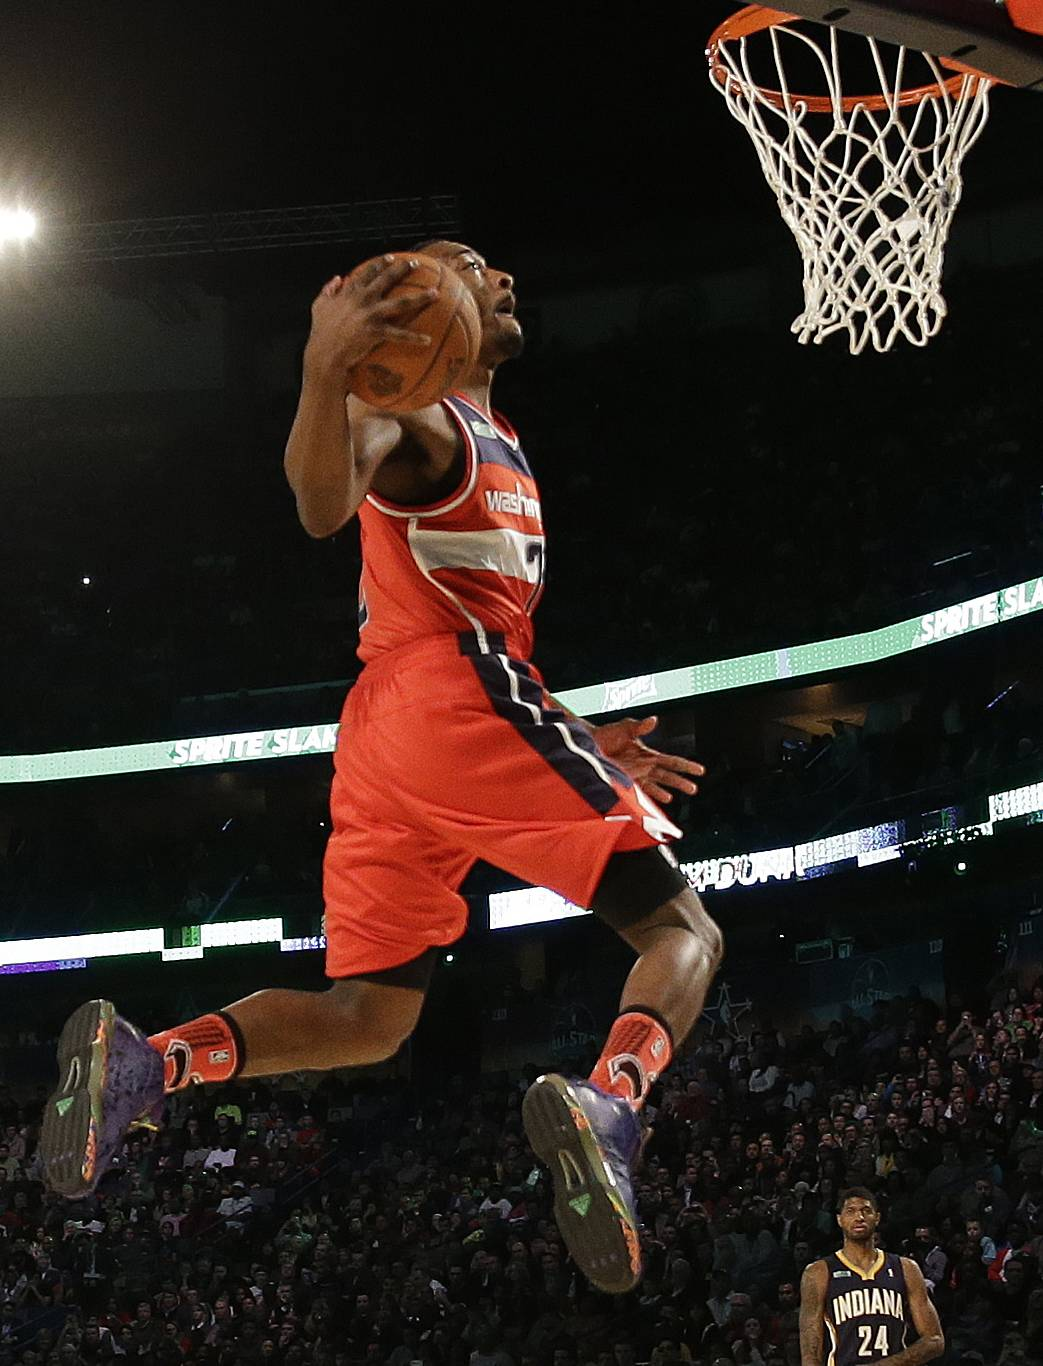 John Wall of the Washington Capitals participates in the slam dunk contest during the skills competition at the NBA All Star basketball game Saturday in New Orleans.